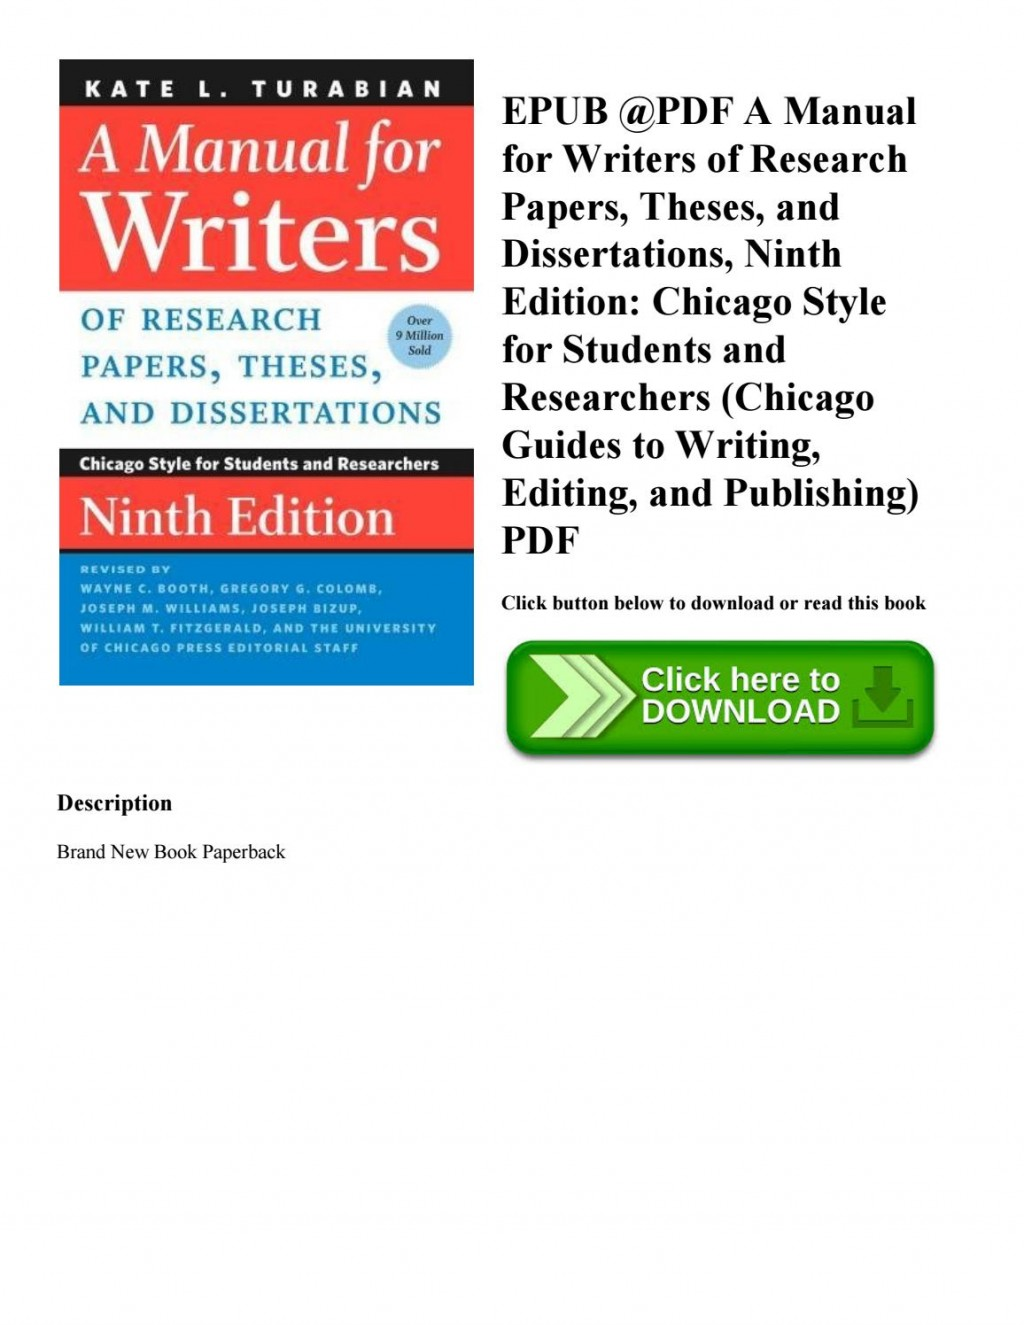 012 Research Paper Page 1 Manual For Writers Of Papers Theses And Dissertations 9th Frightening A Edition Pdf Large